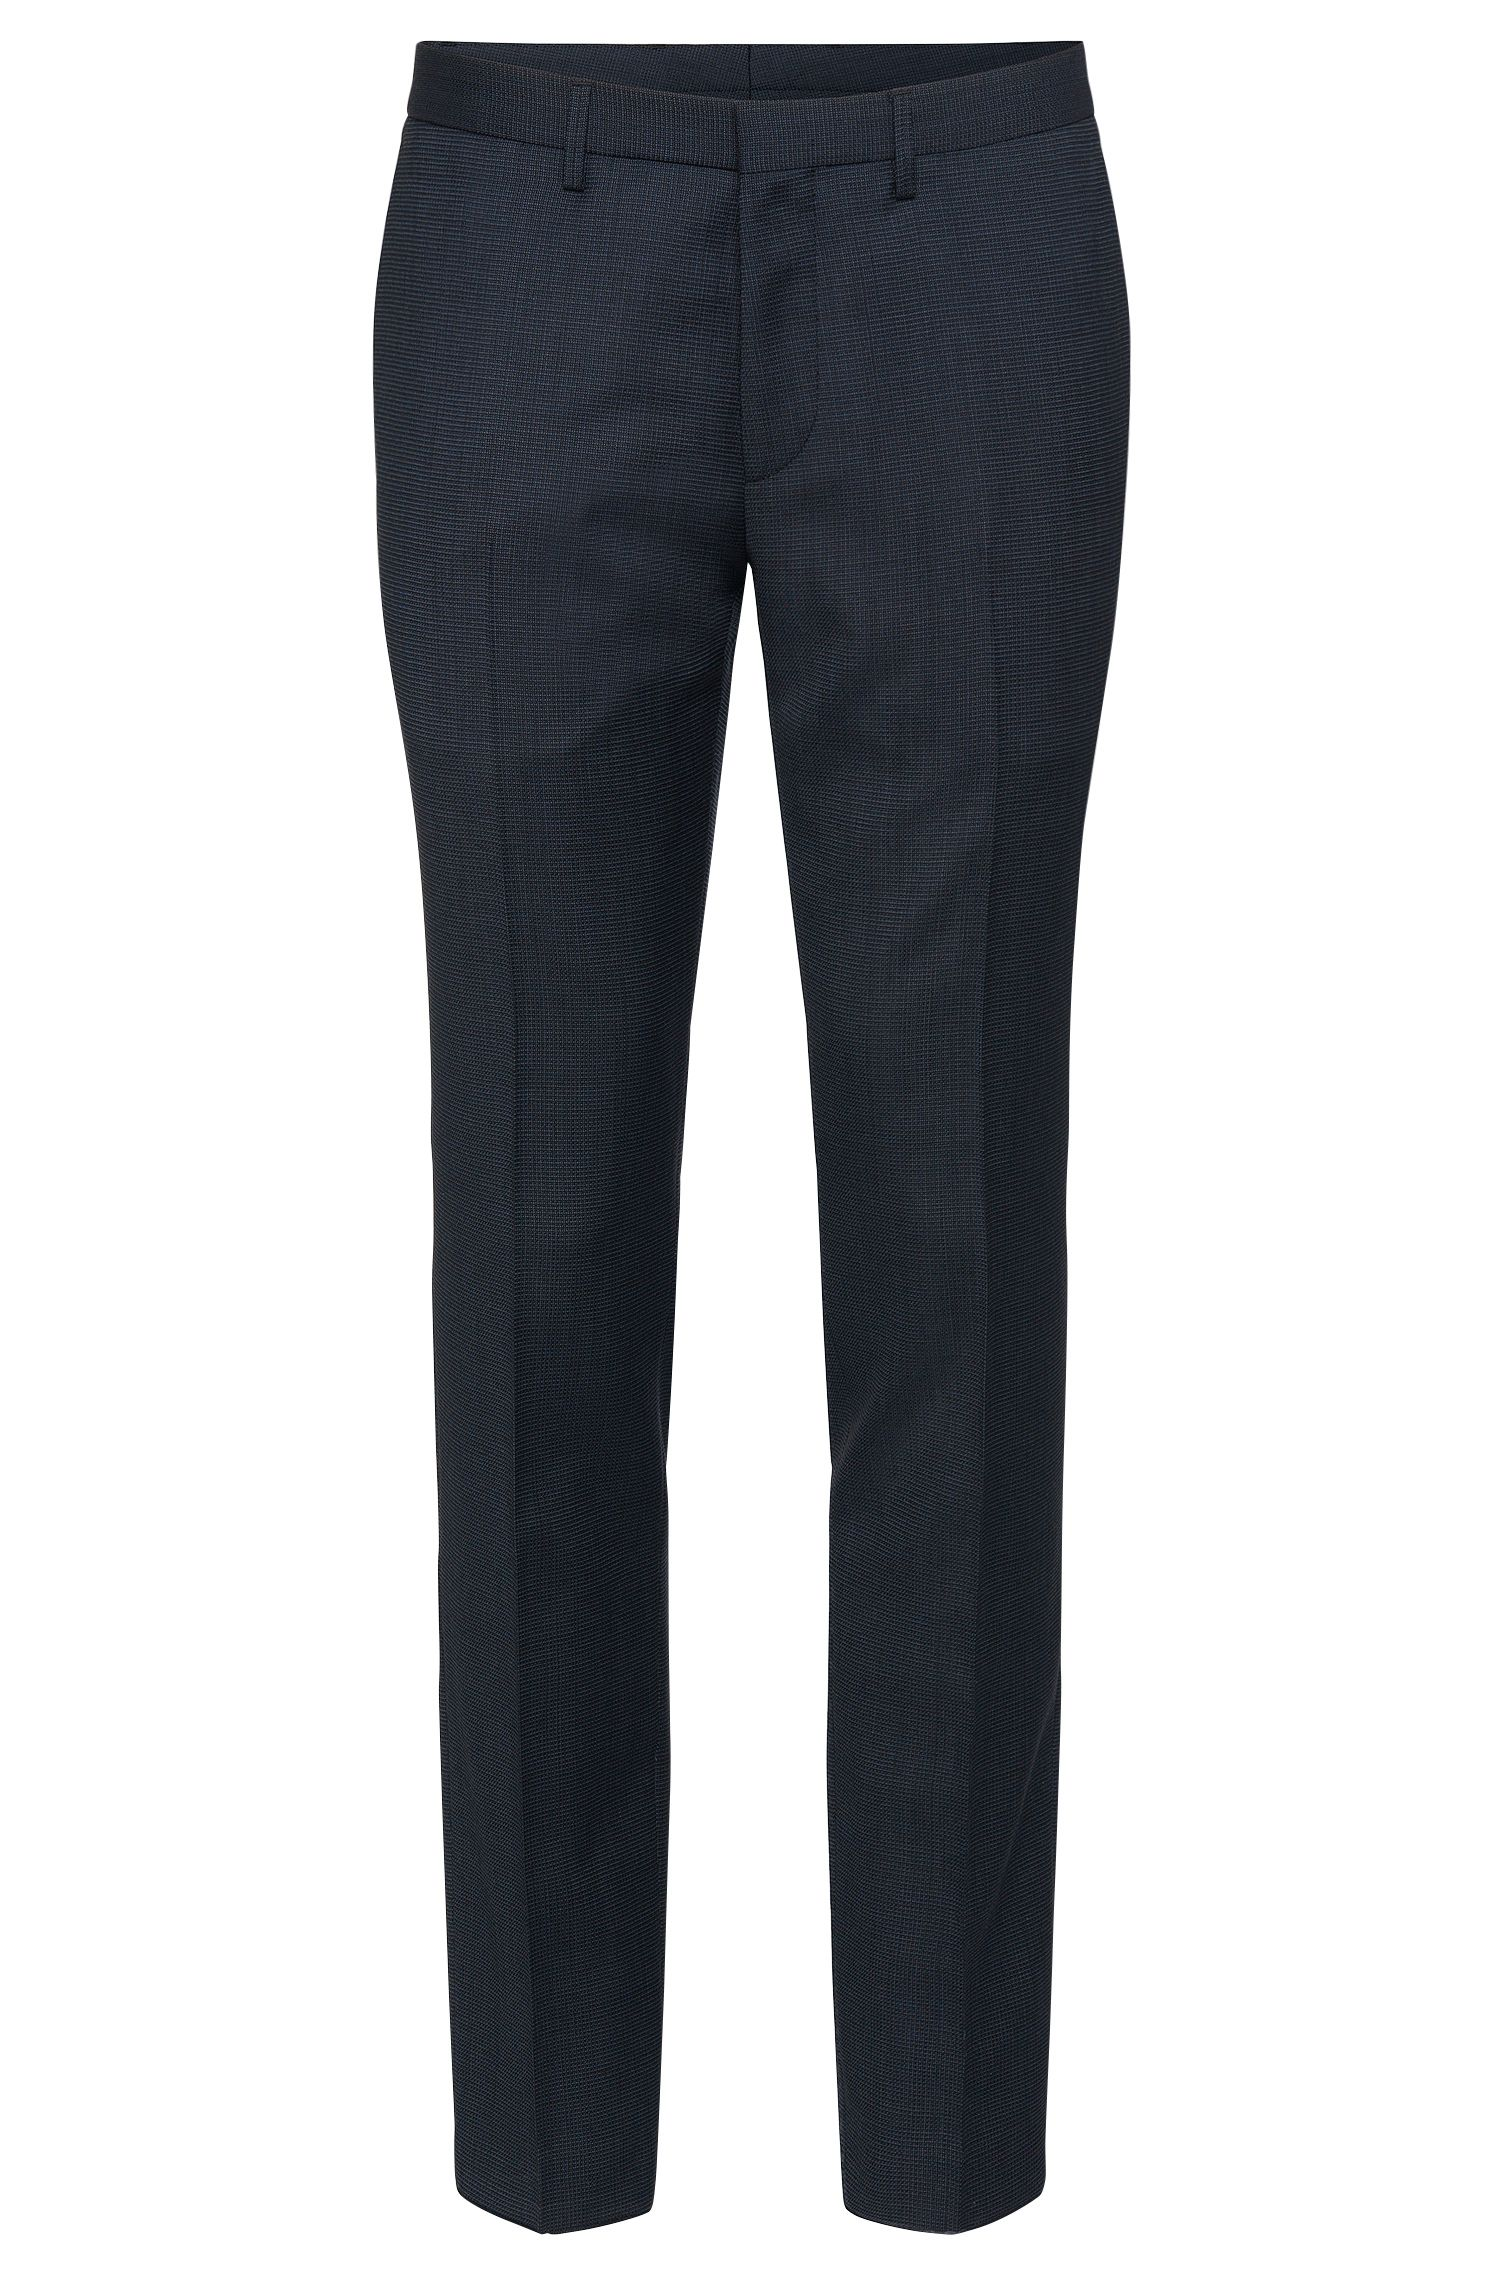 'Willard' | Extra Slim Fit, Virgin Wool Dress Pants